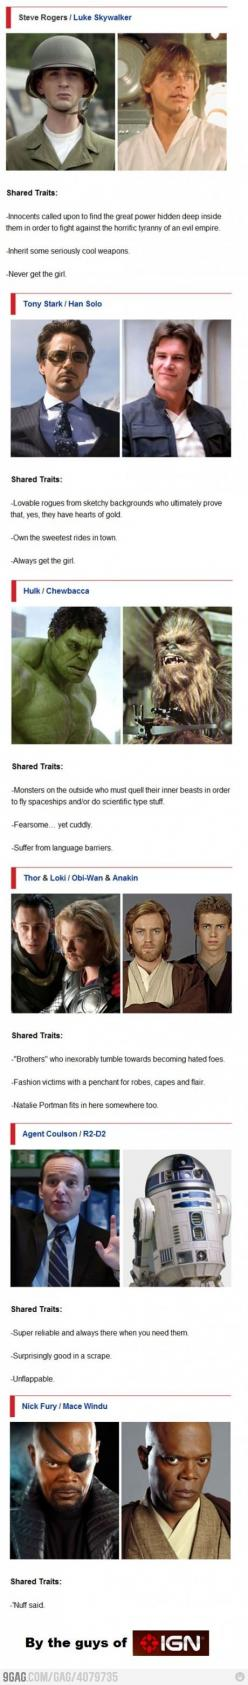 Comparing the characters in The Avengers to characters in Star Wars.  Natalie Portman fits in here somewhere, too.: Nerd, Epic Ign, Avengers Starwars, Avengers Star Wars, Wars Comparison, Portman Fits, Fandom, Star Wars Avengers, The Avengers